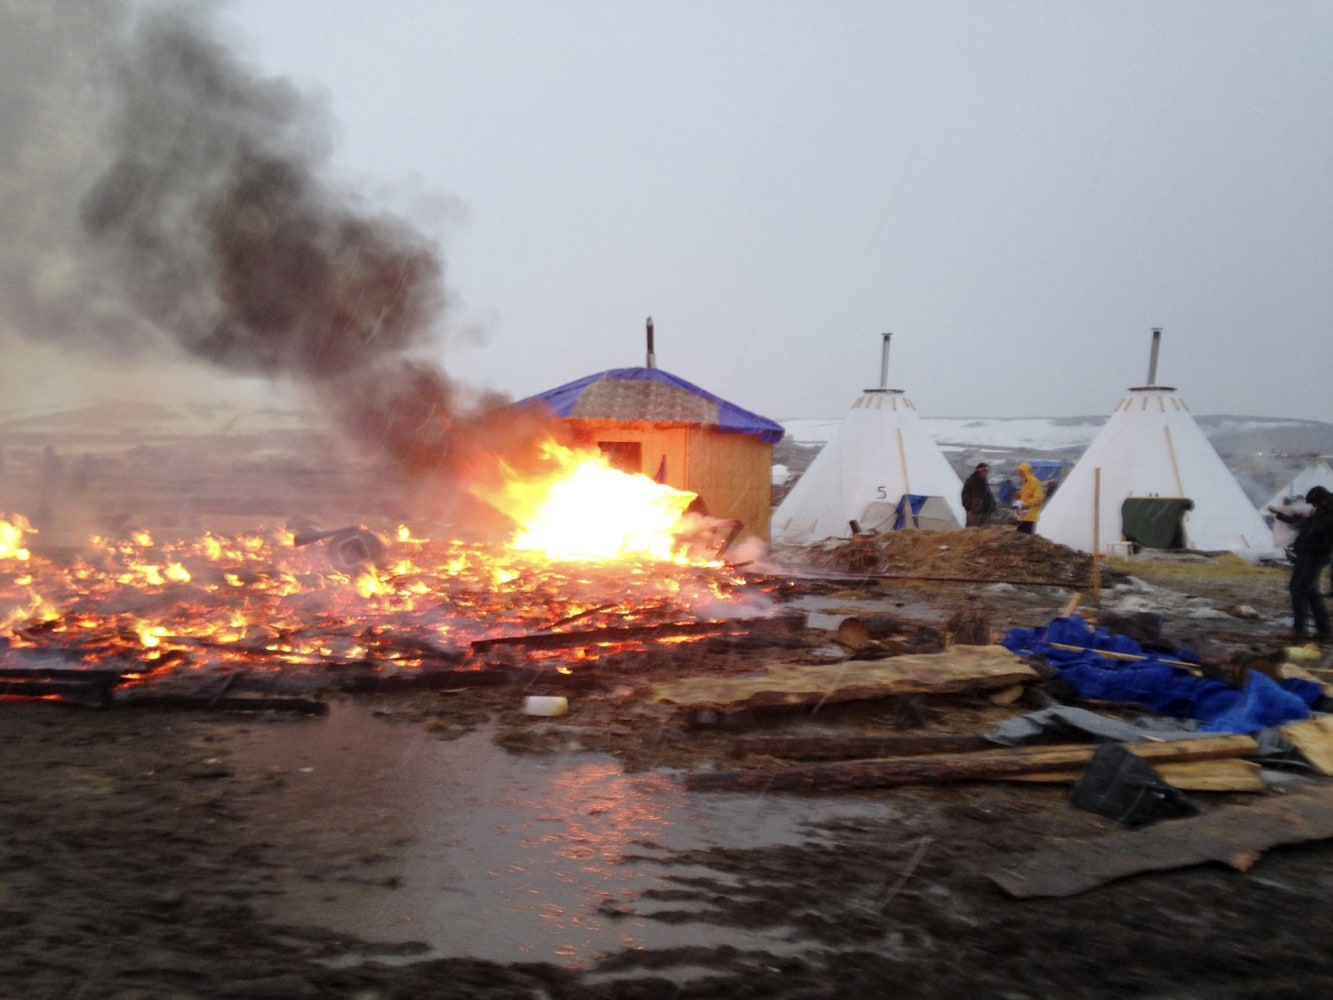 Ten arrested in final evacuation of Dakota Access protest camp